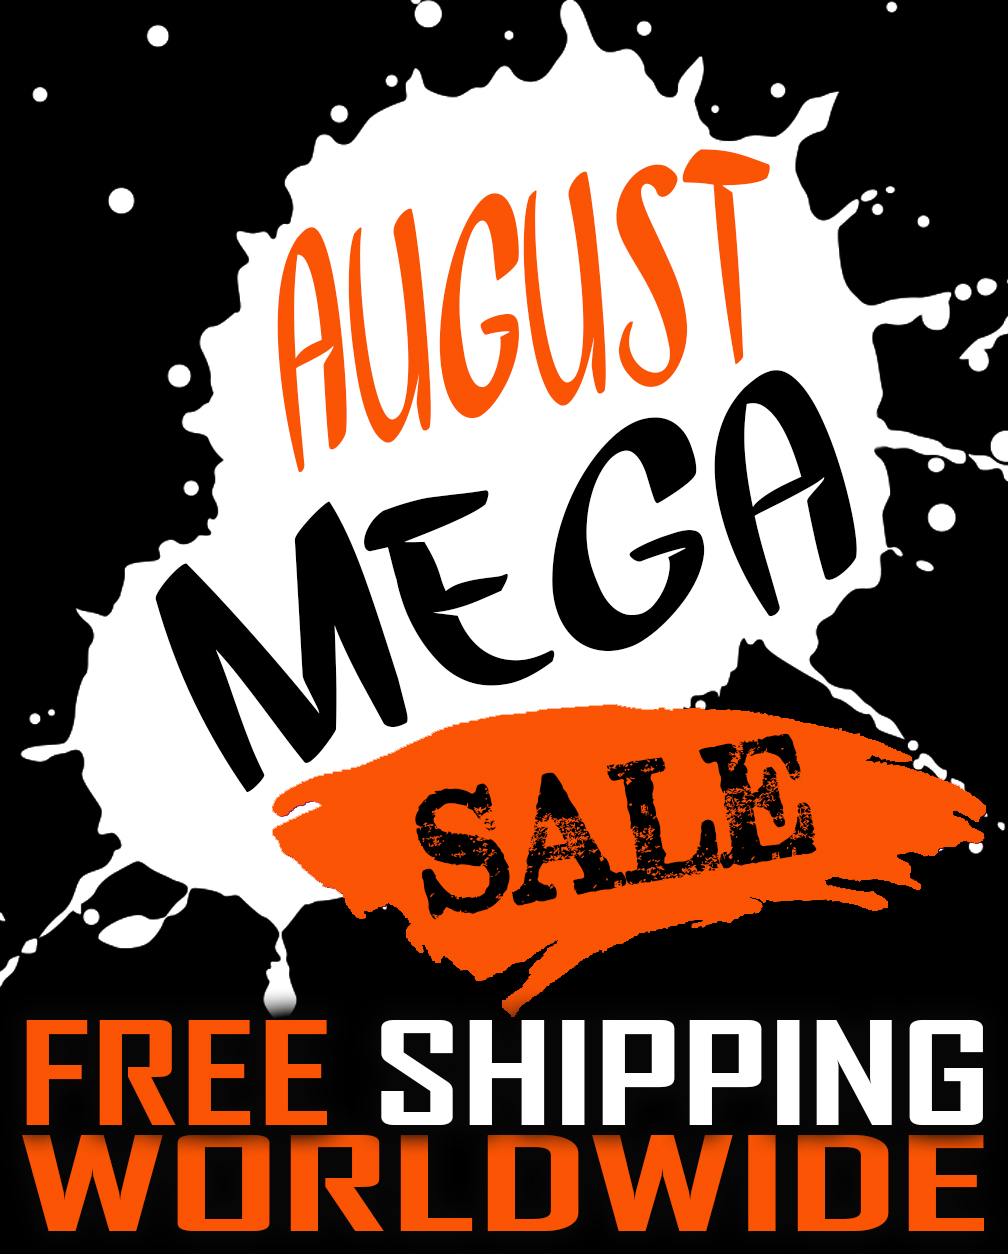 august-mega-sale-free-worldwide-shipping.jpg